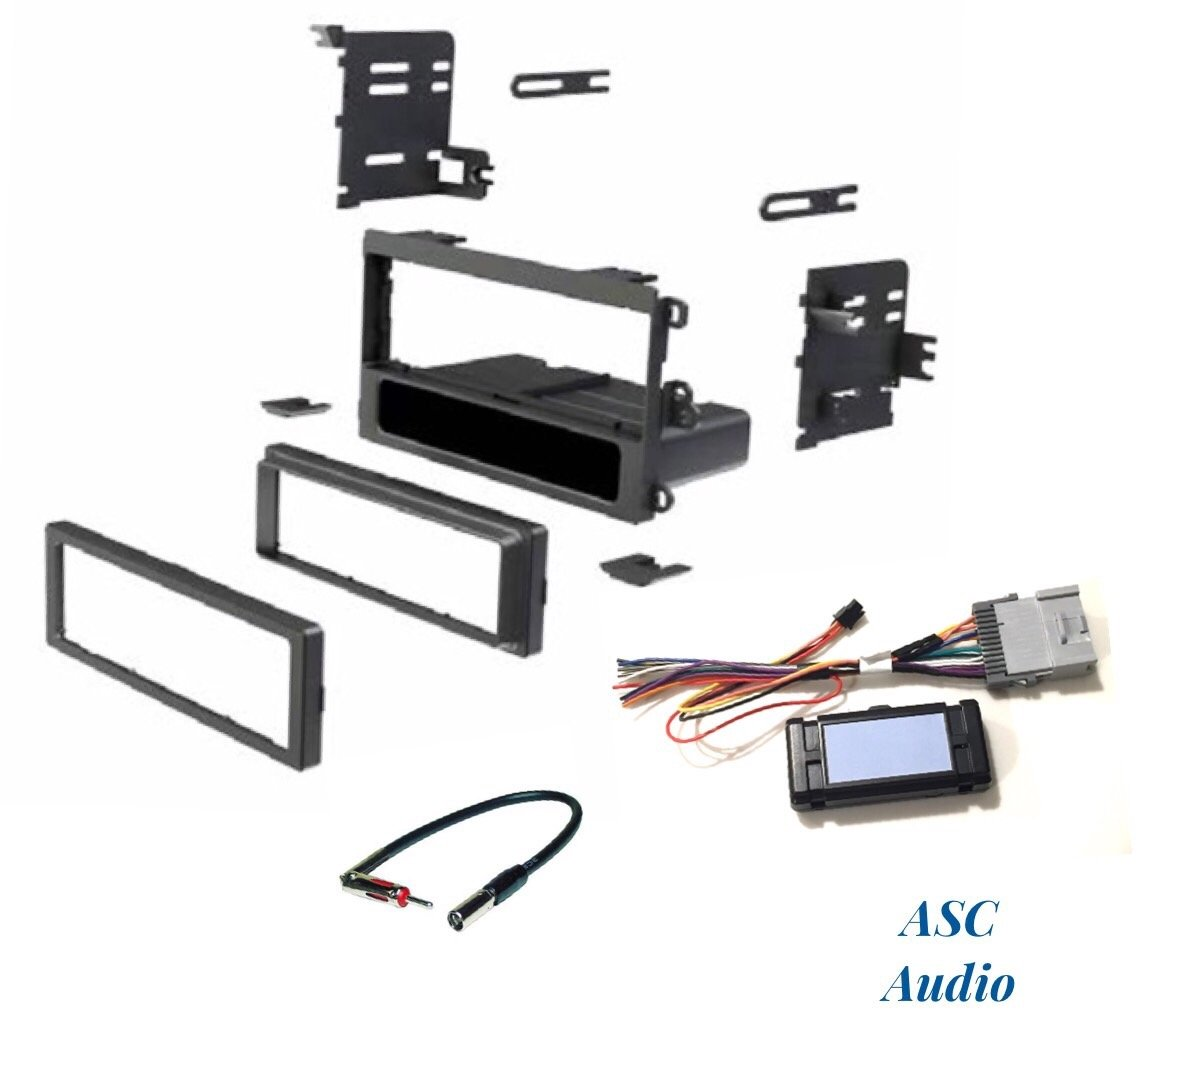 Asc Audio Car Stereo Dash Kit Wire Harness And Antenna 1975 Gmc Blazer Wiring Adapter To Add A Single Din Radio For Some Buick Chevrolet Isuzu Oldsmobile Pontiac